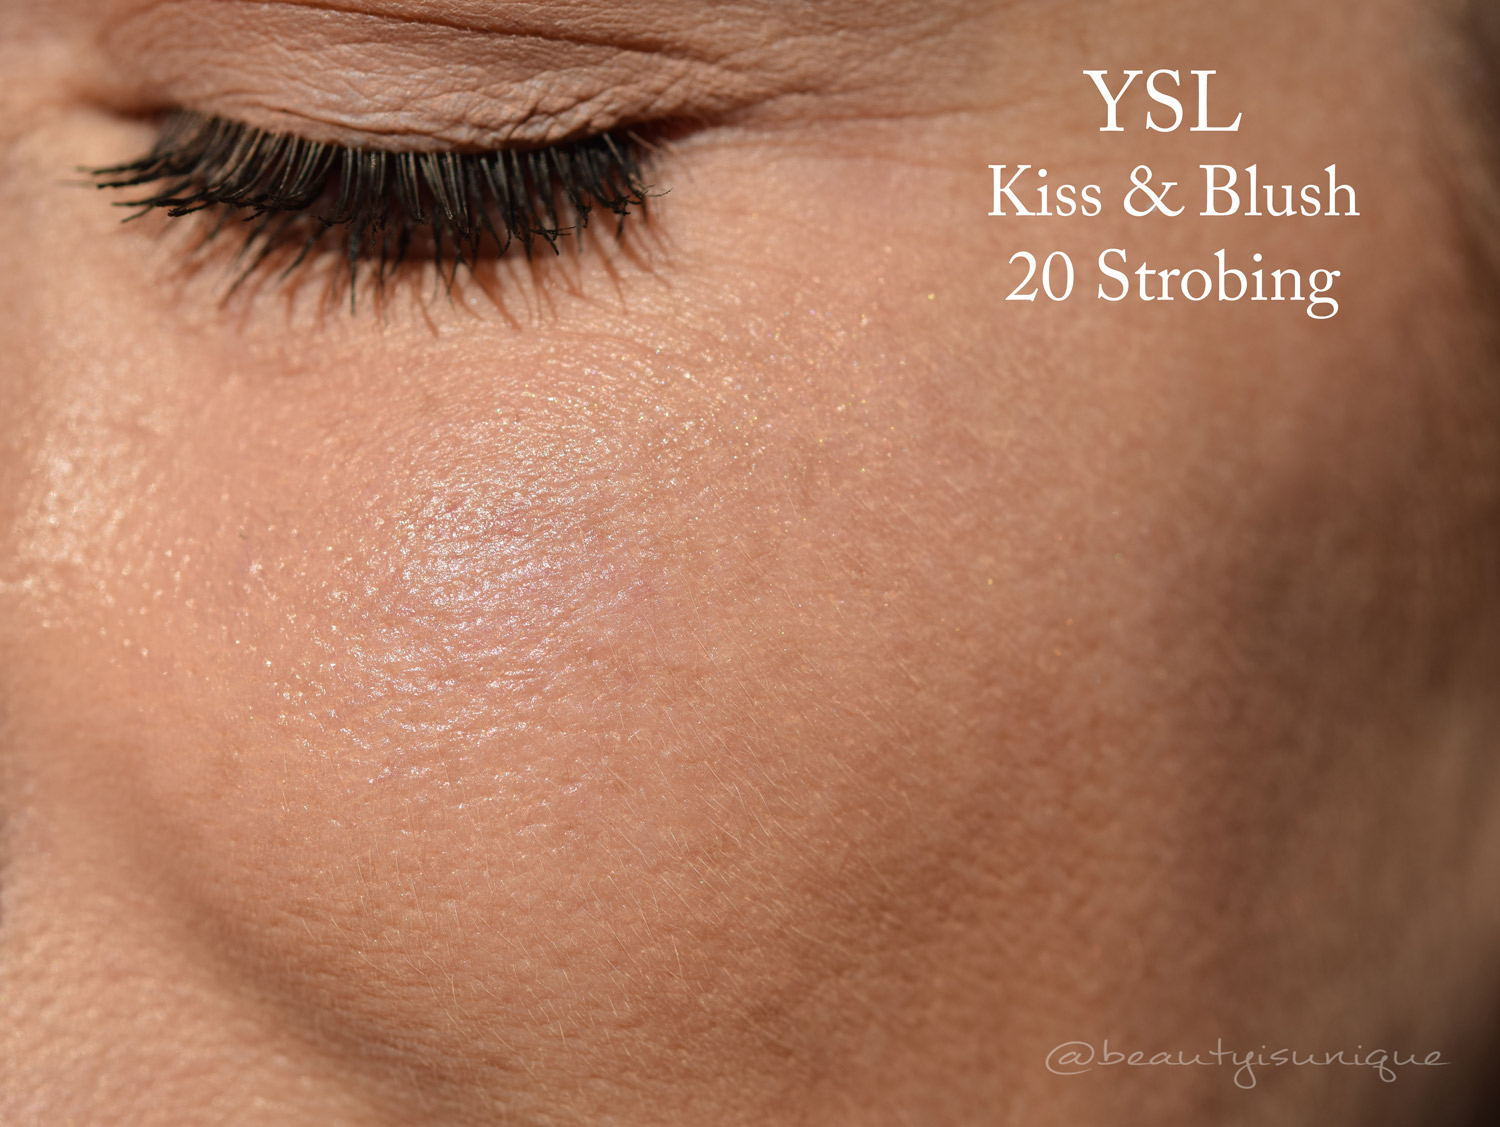 ysl-kiss-and-blush-strobing-swatches